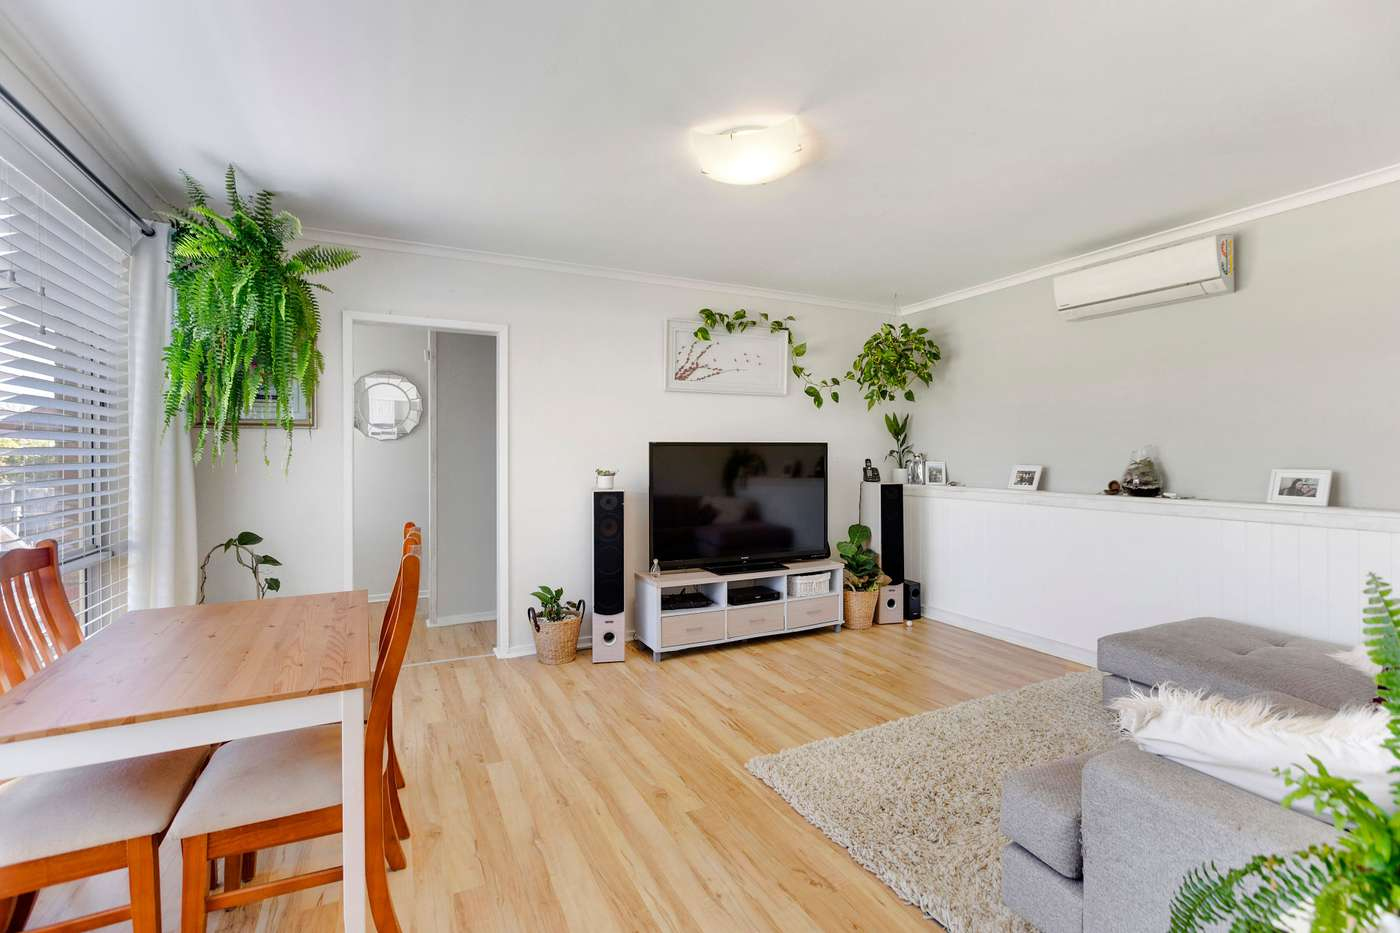 Main view of Homely house listing, 1/7 Brunning Crescent, Frankston North, VIC 3200